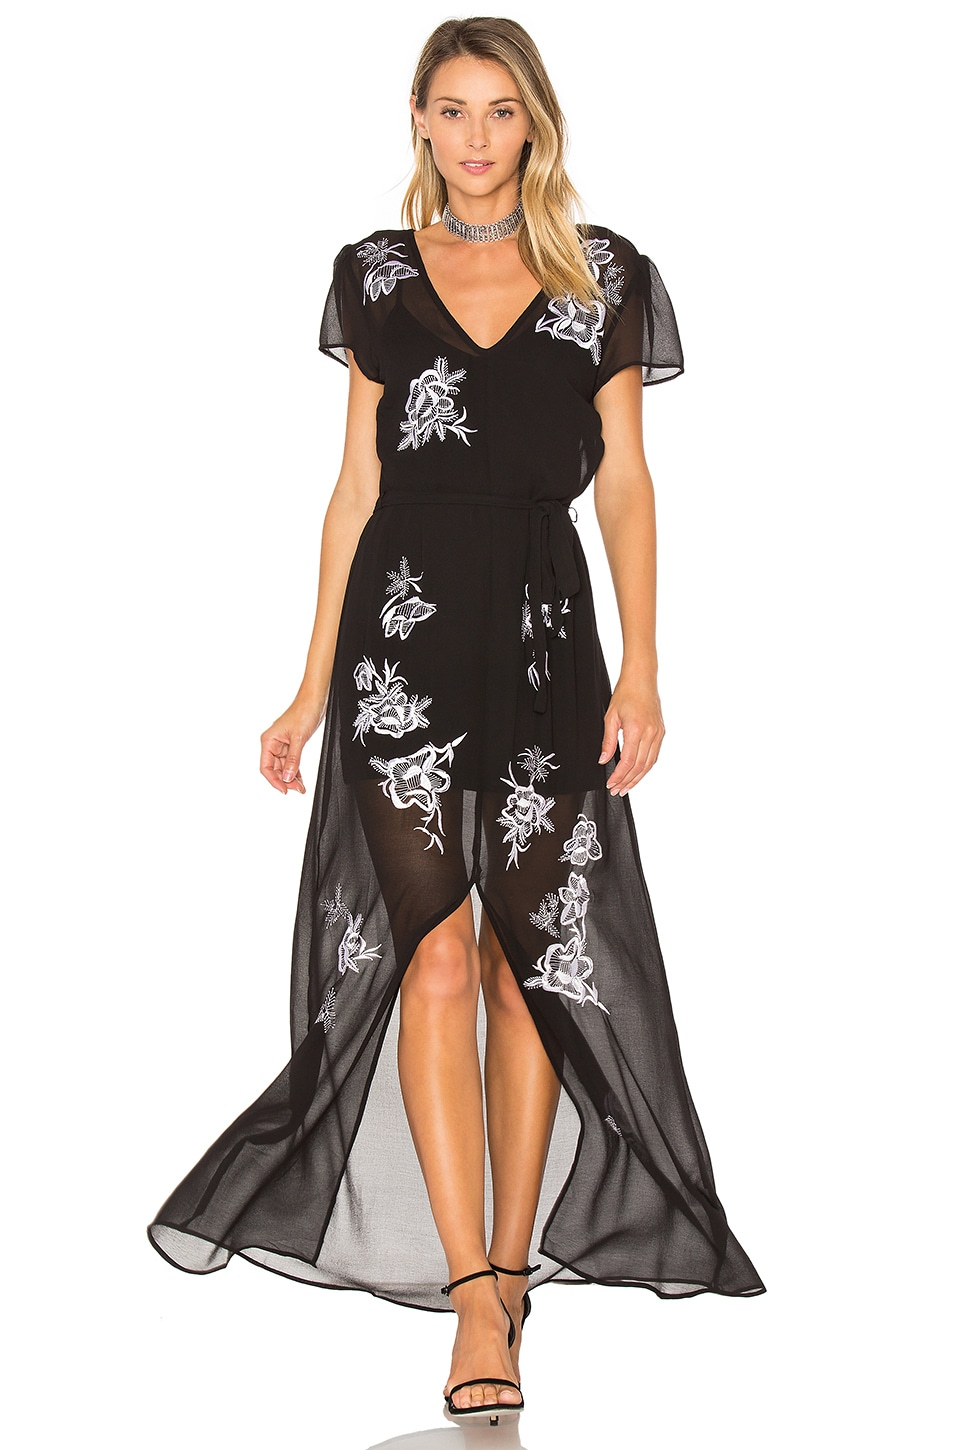 Lovers + Friends Sea Goddess Dress in Black